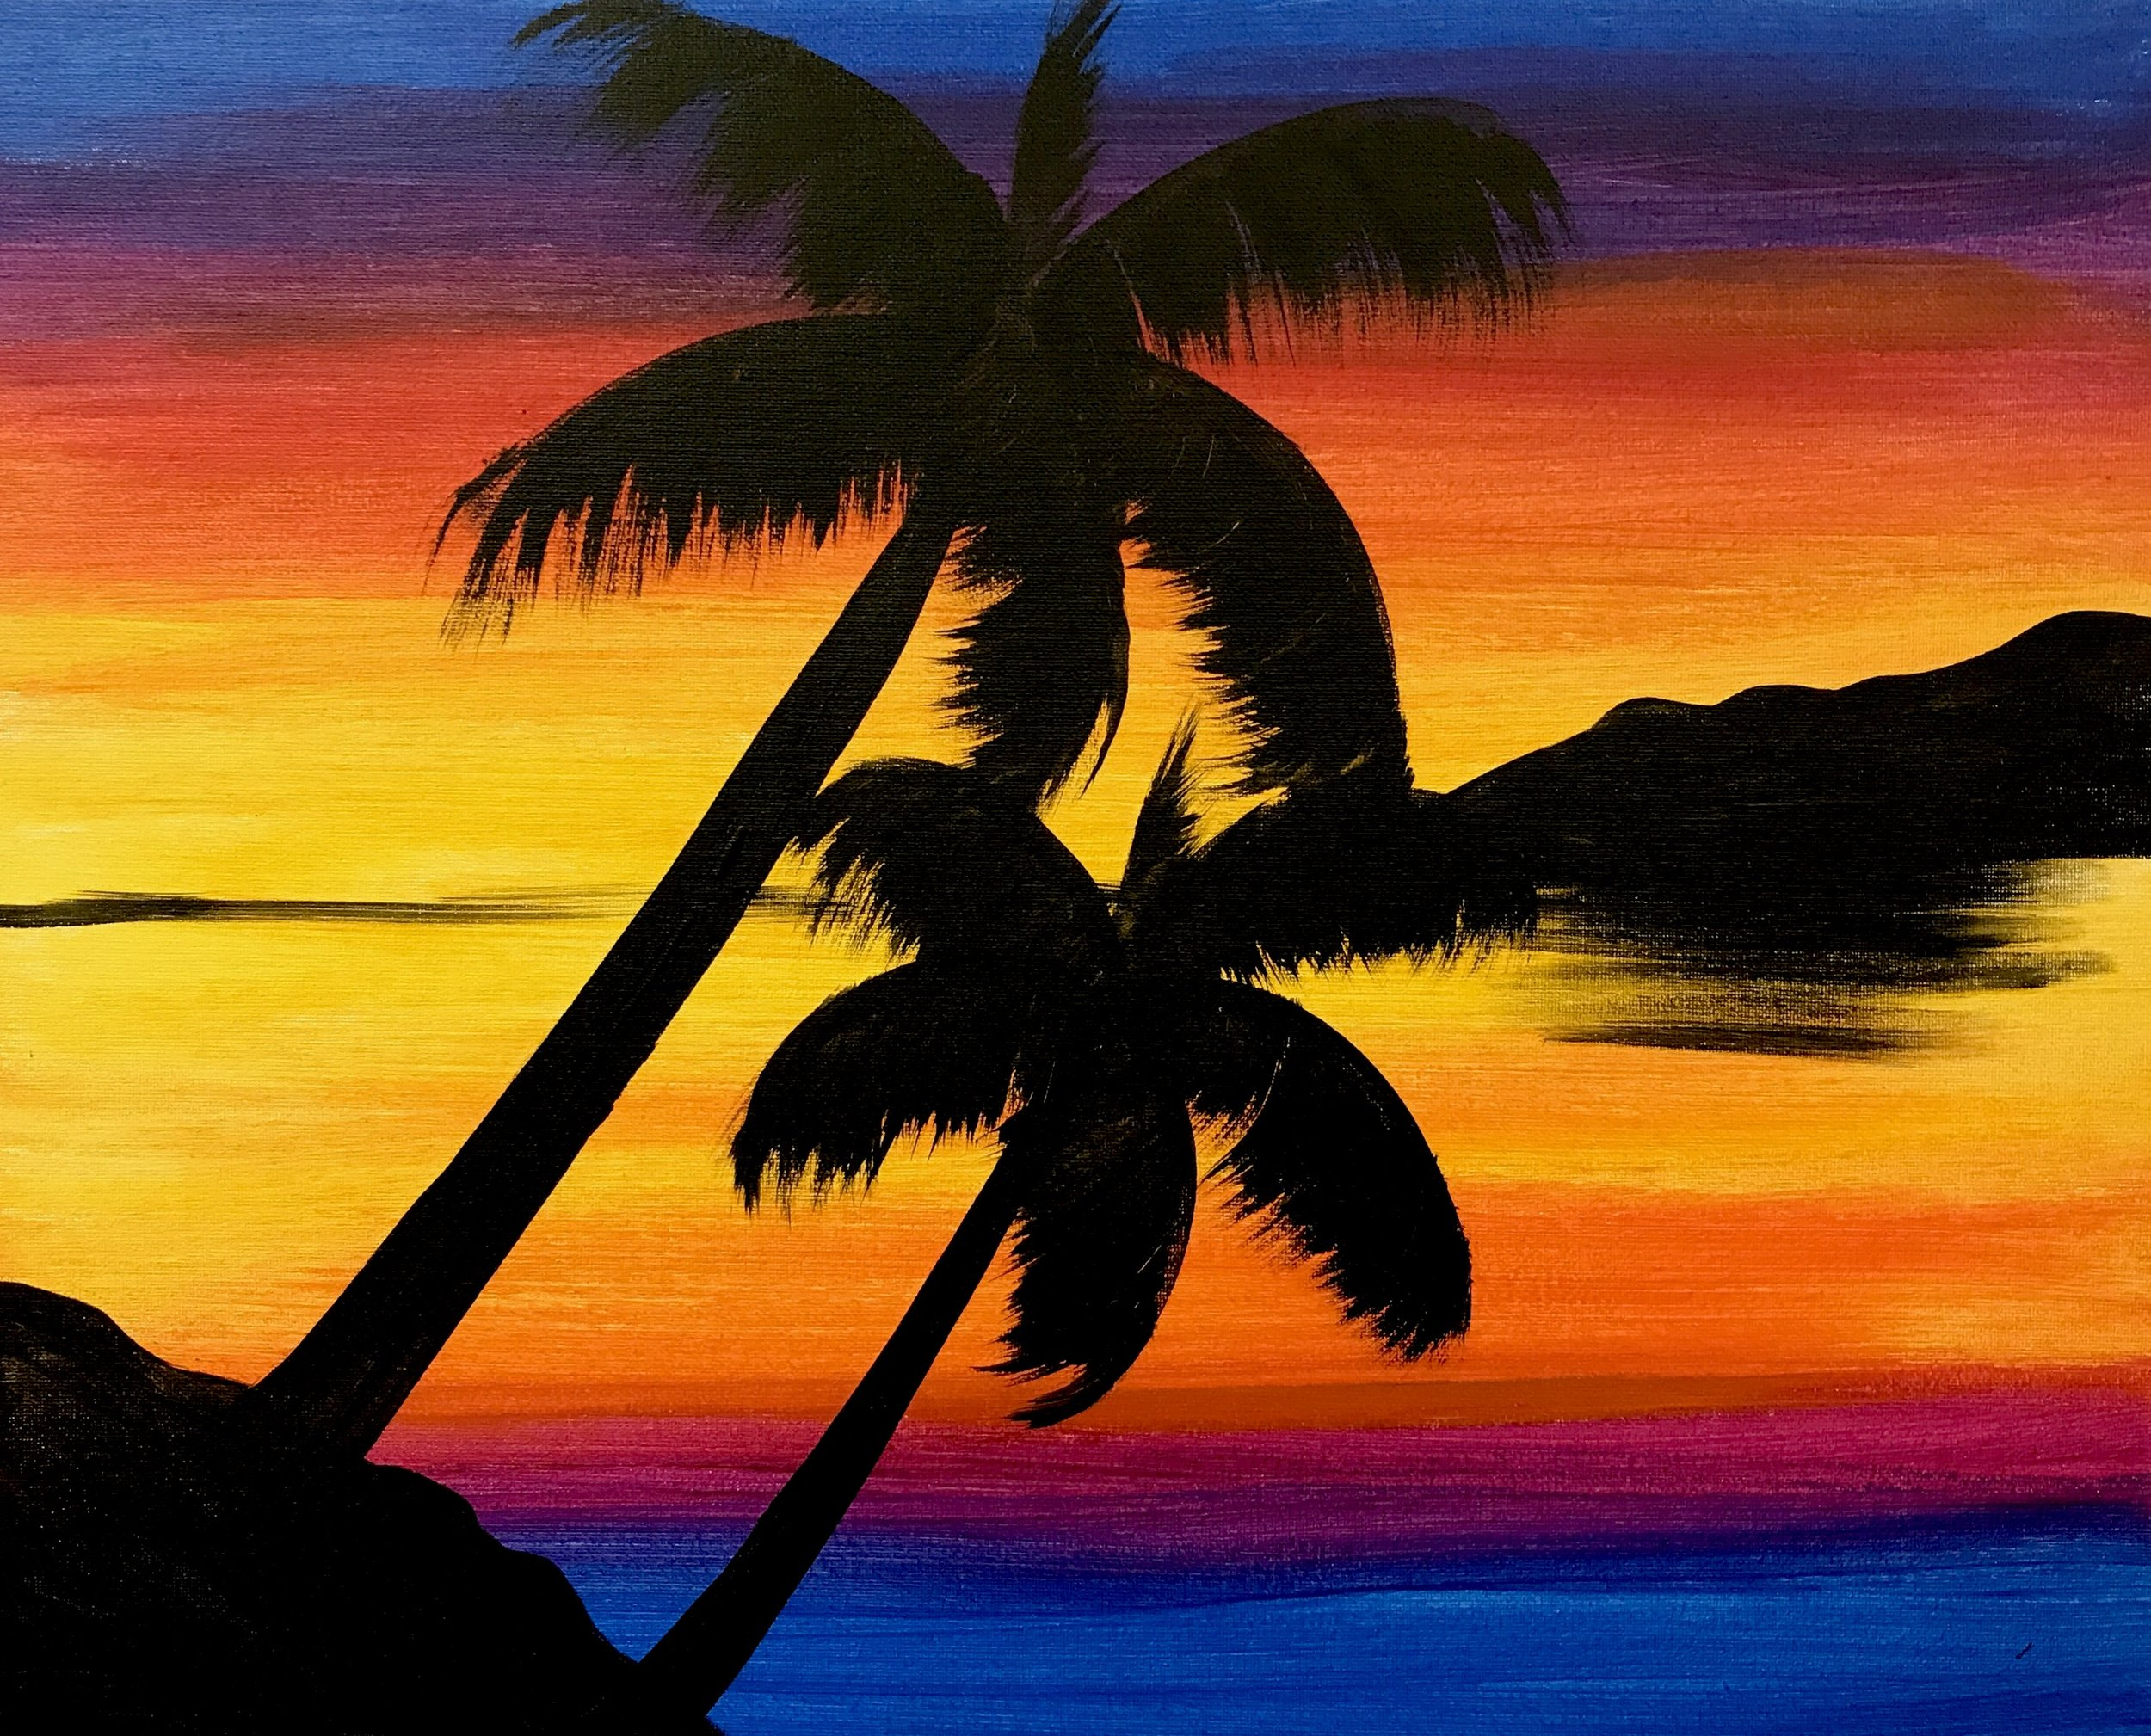 Sunset Palms 2.jpg